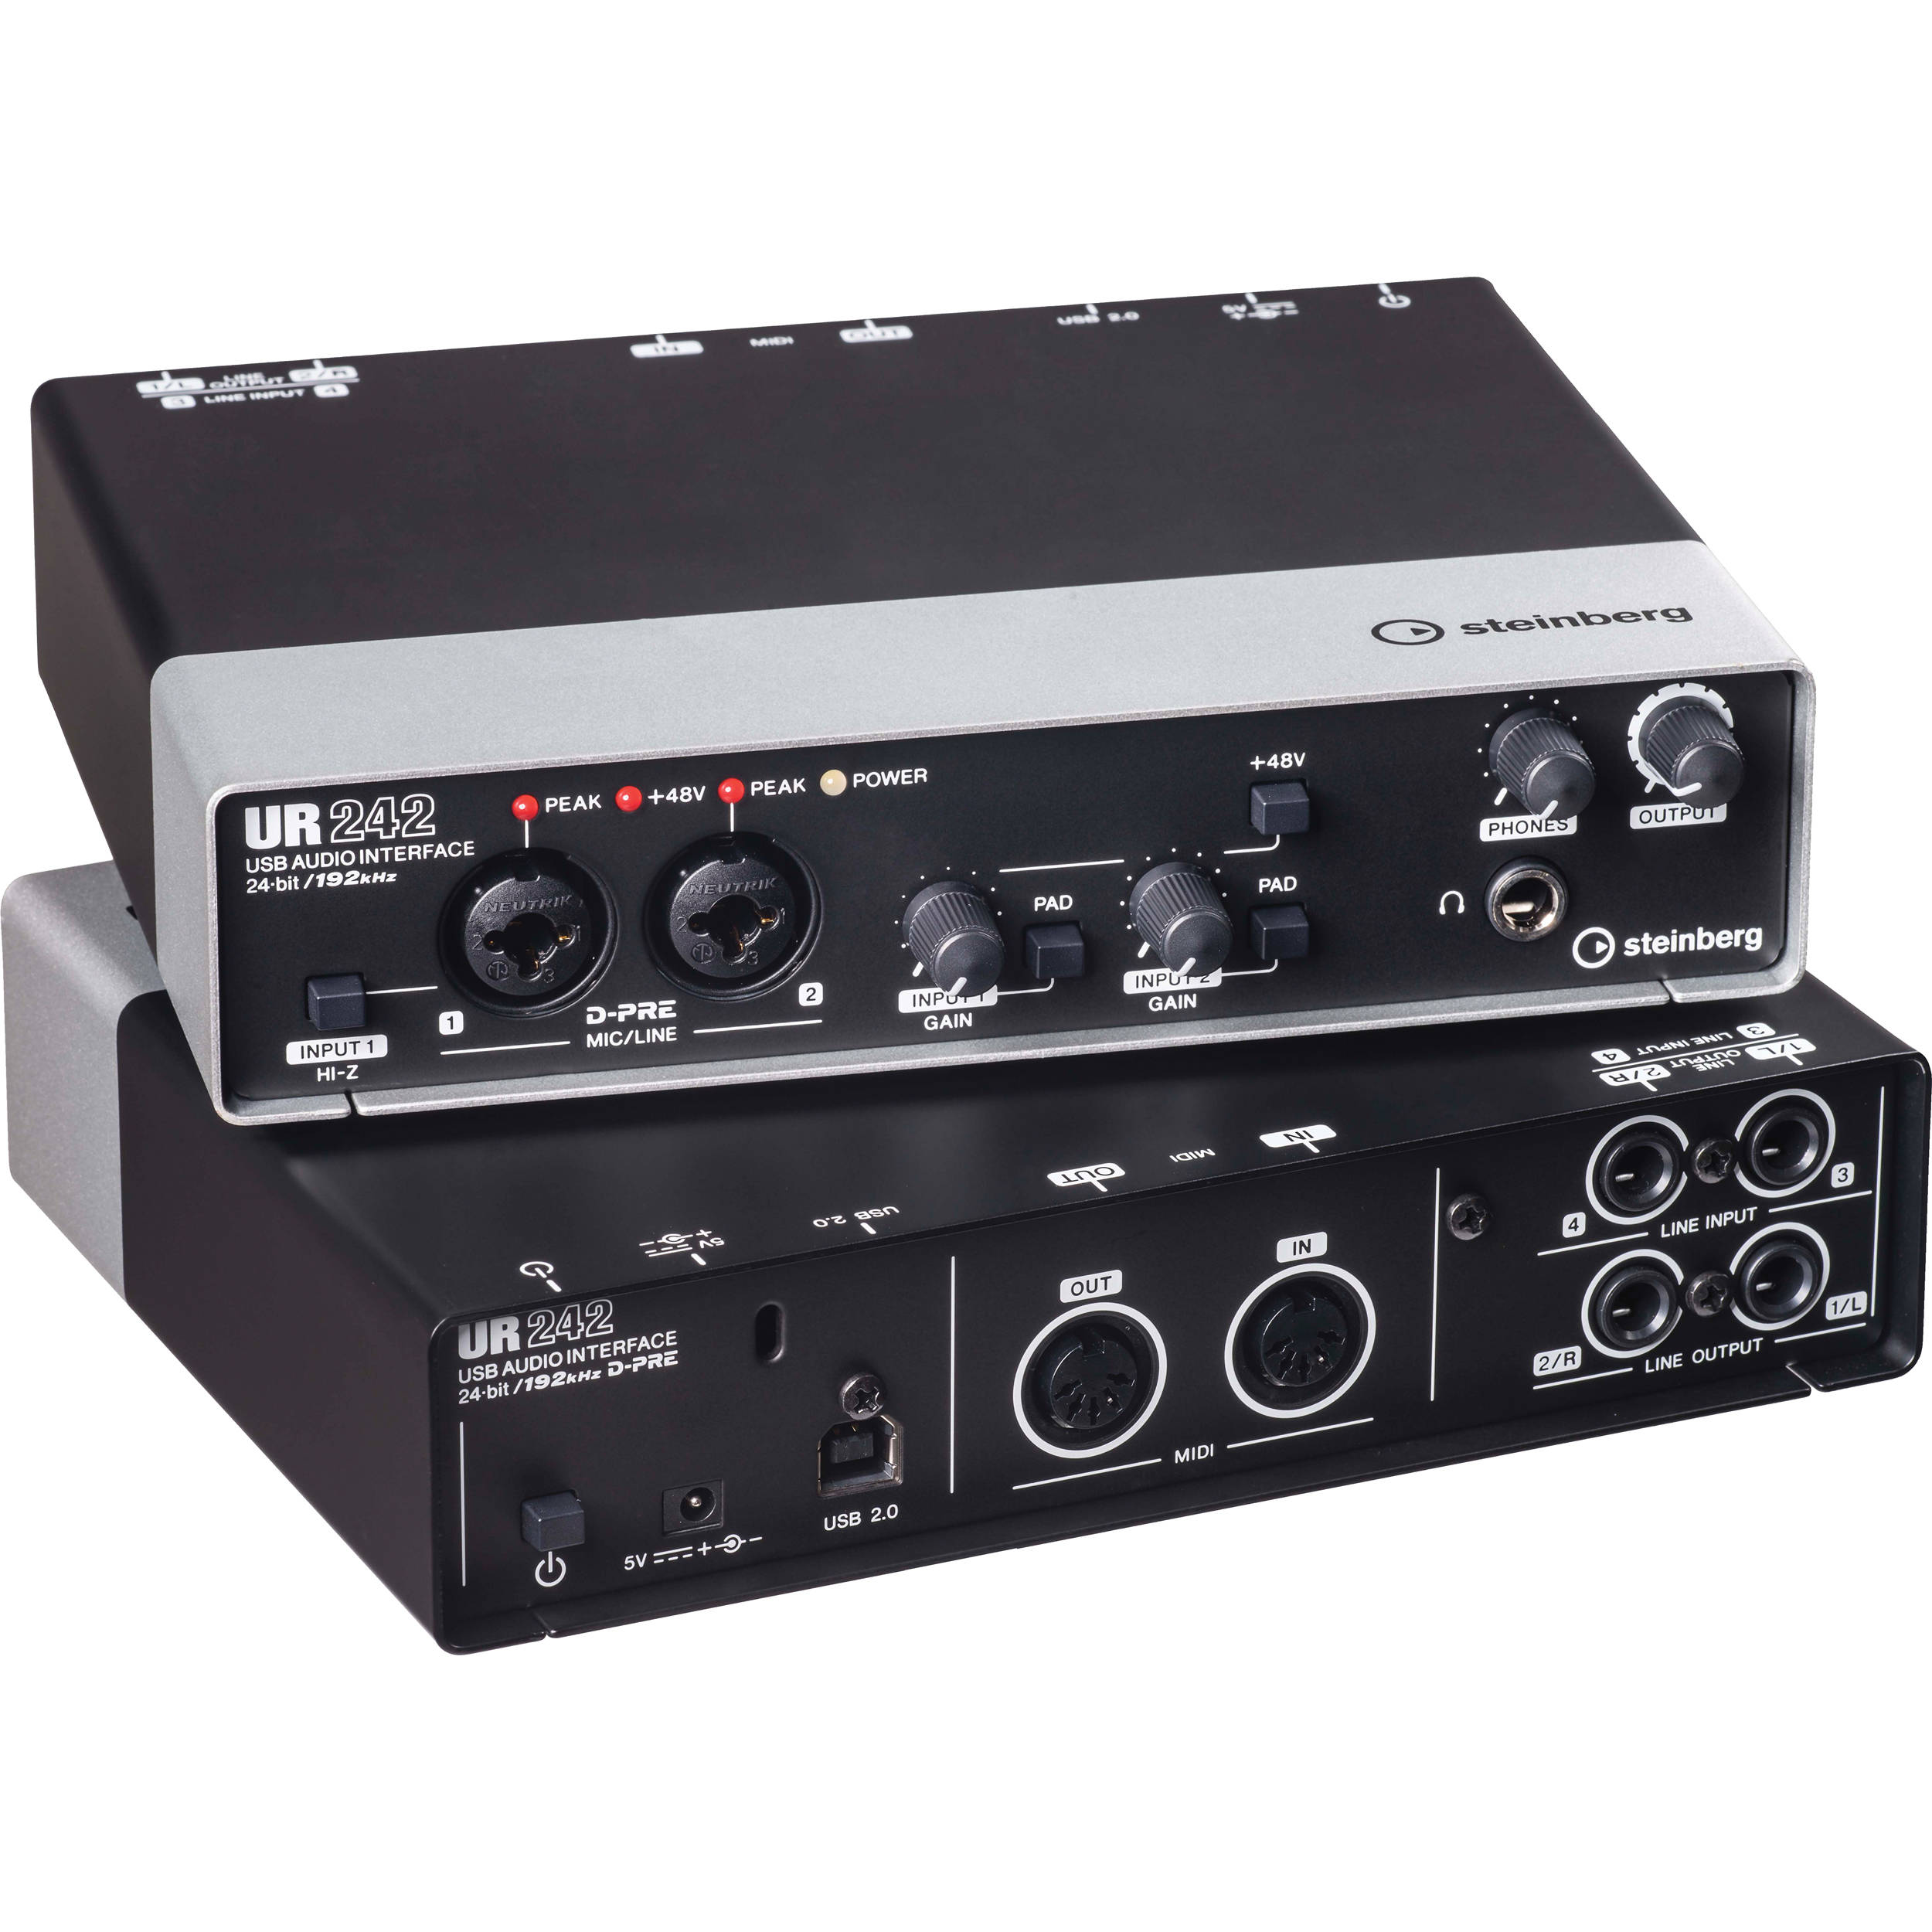 steinberg ur242 usb 2 0 audio interface with dual ur242 b h. Black Bedroom Furniture Sets. Home Design Ideas